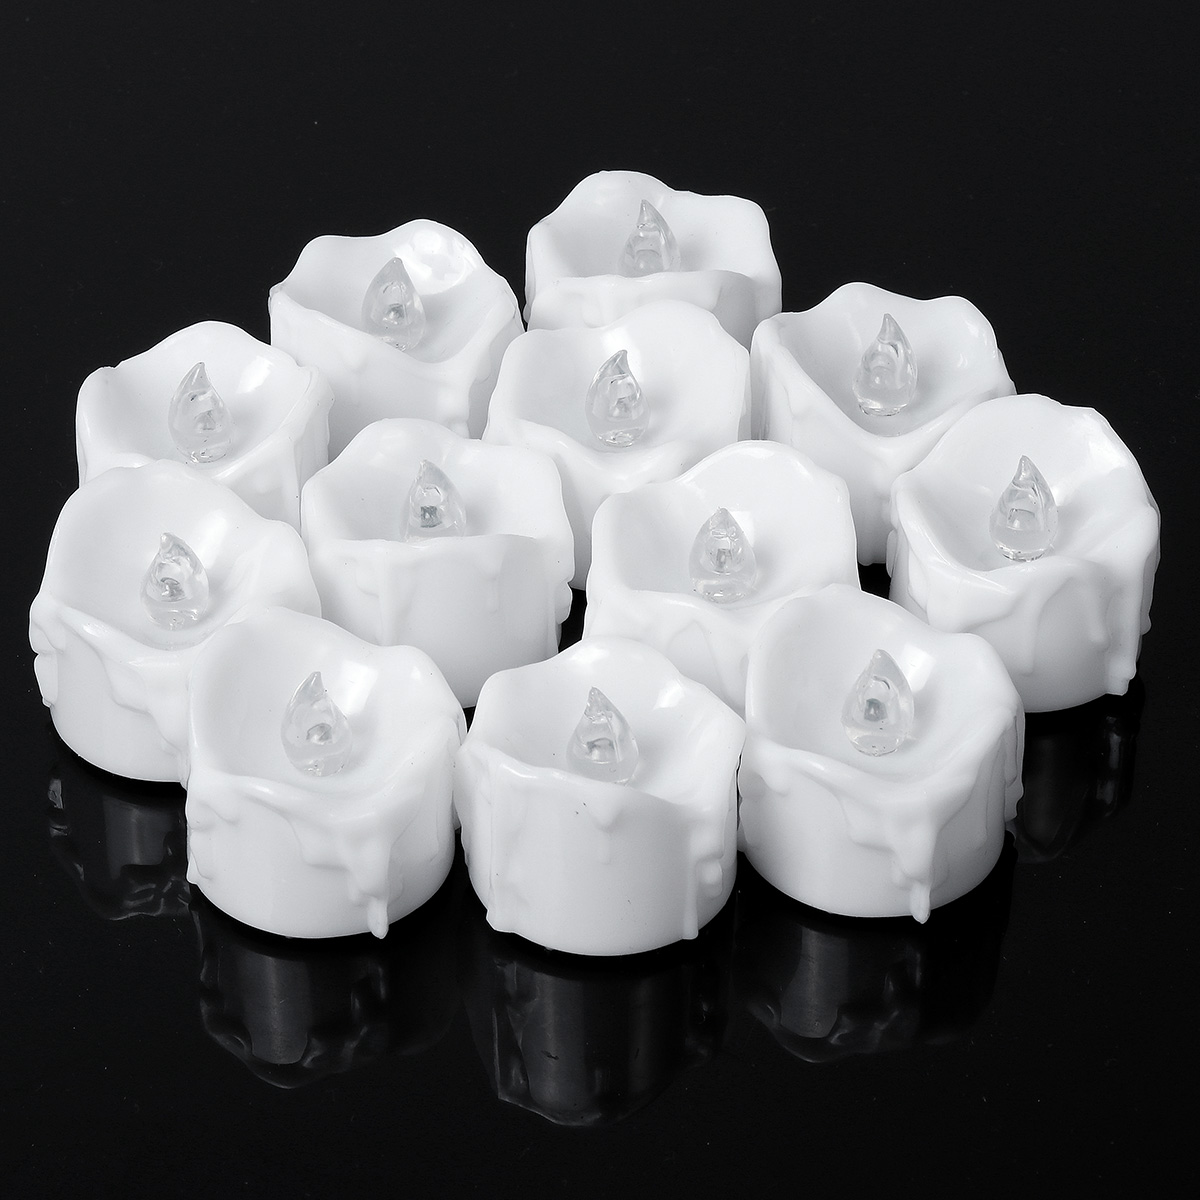 12x Flameless Votive Candles Battery Operated Flickering LED Tealight Tea Lights